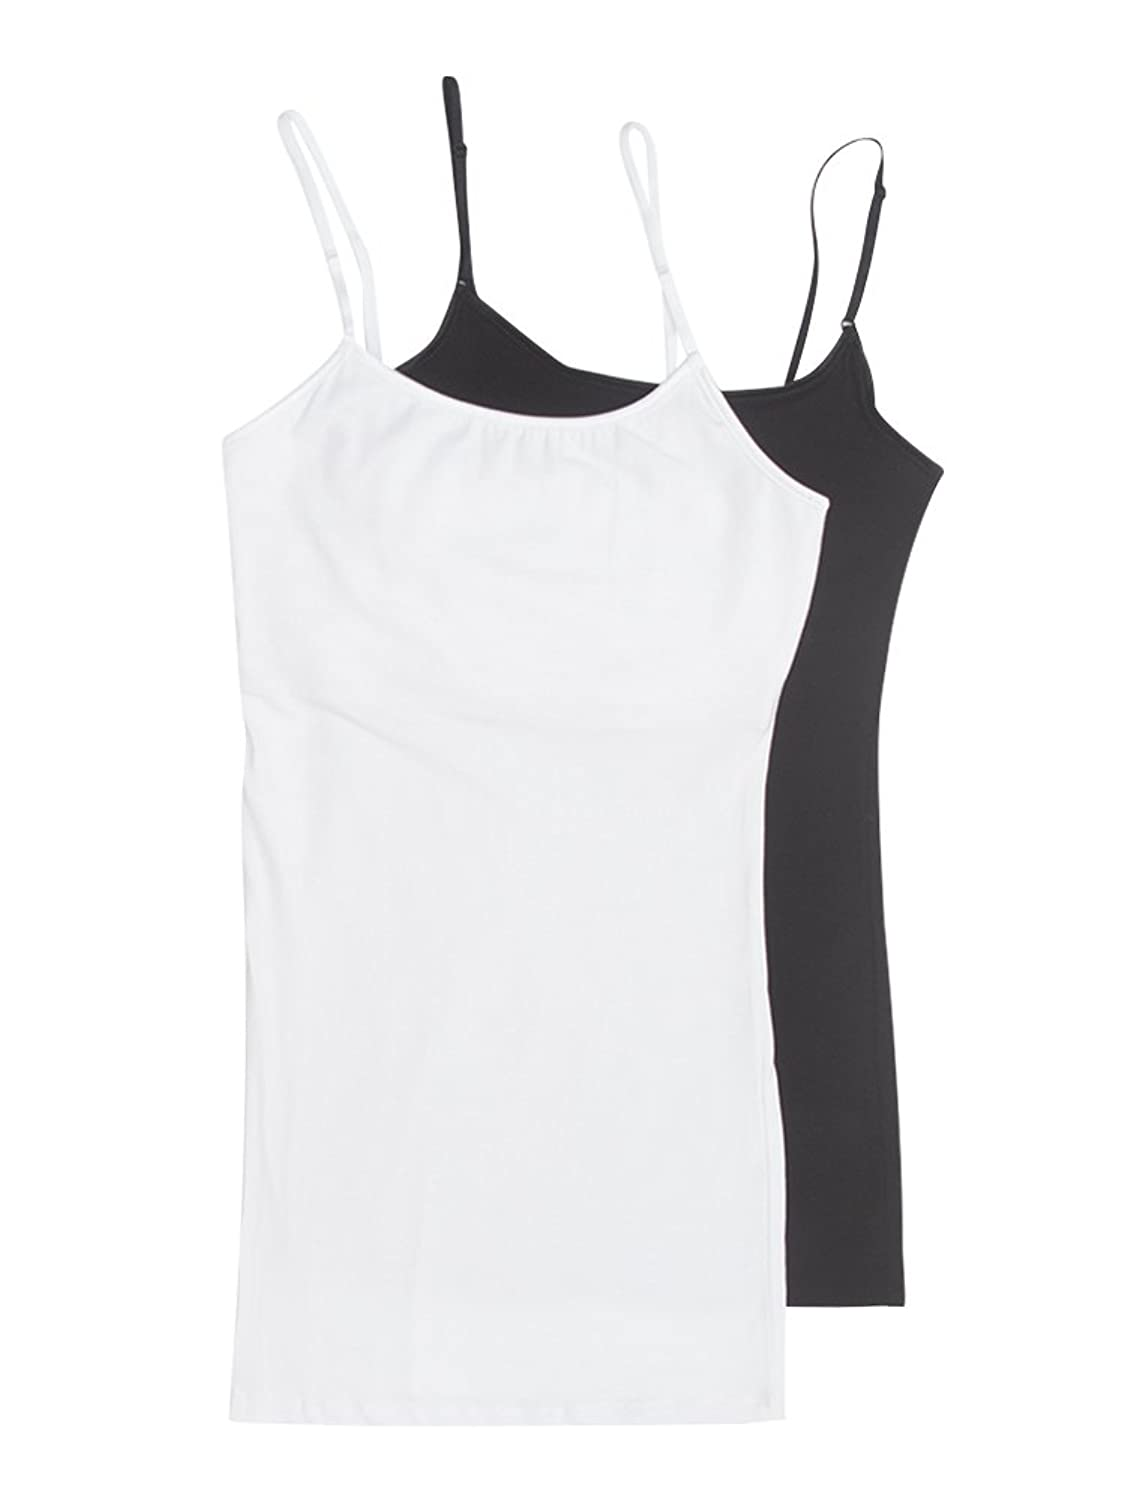 Active USA Basic Women's Long Cami Set With Built In Bra (2 Pack) - Junior Sizes